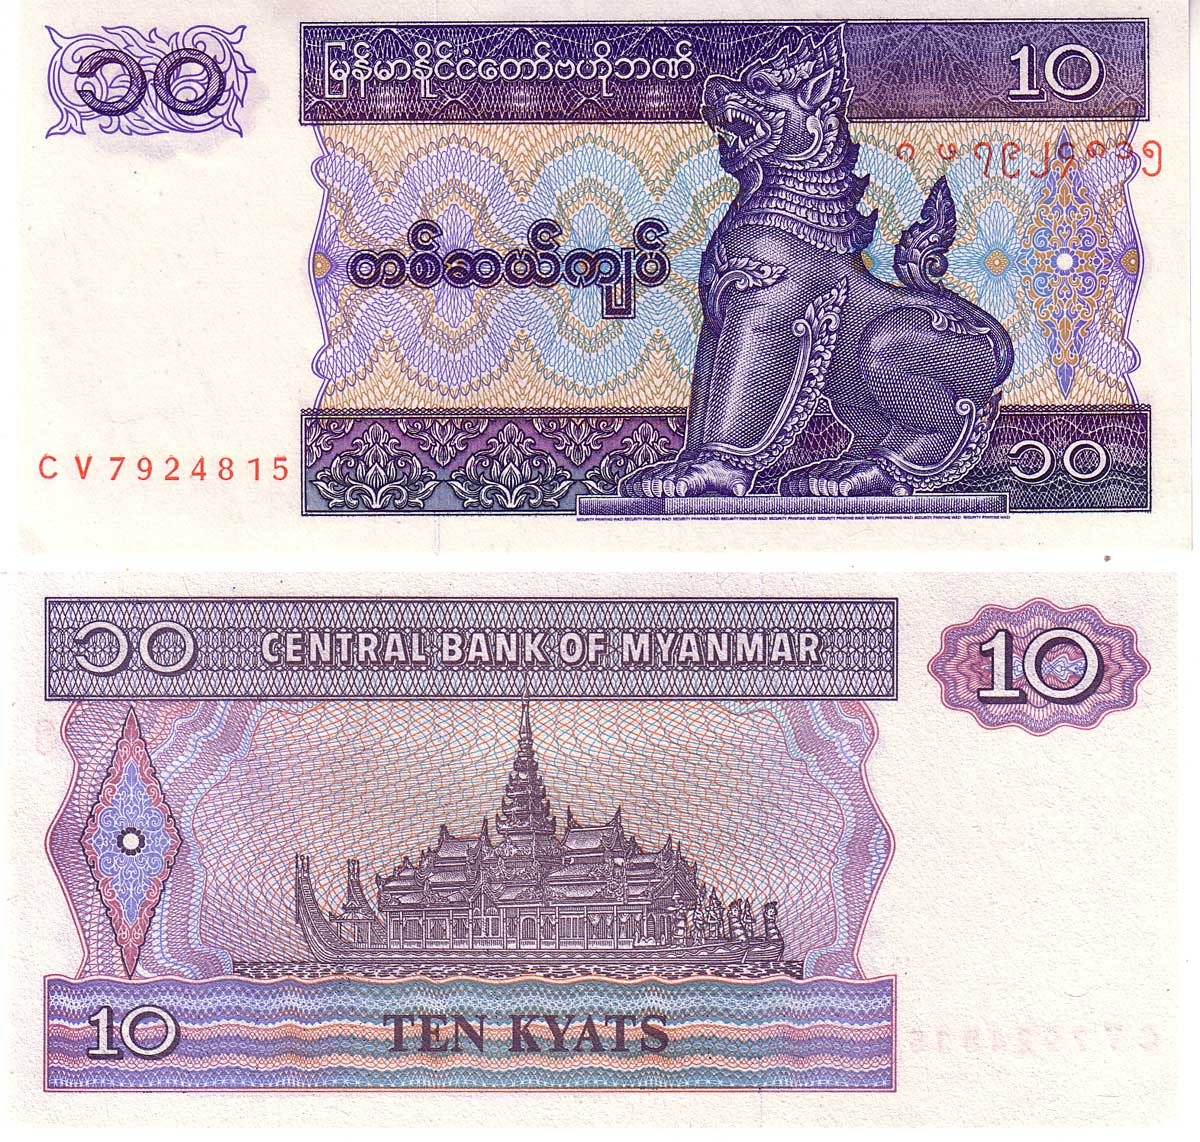 Asian country is kyat the